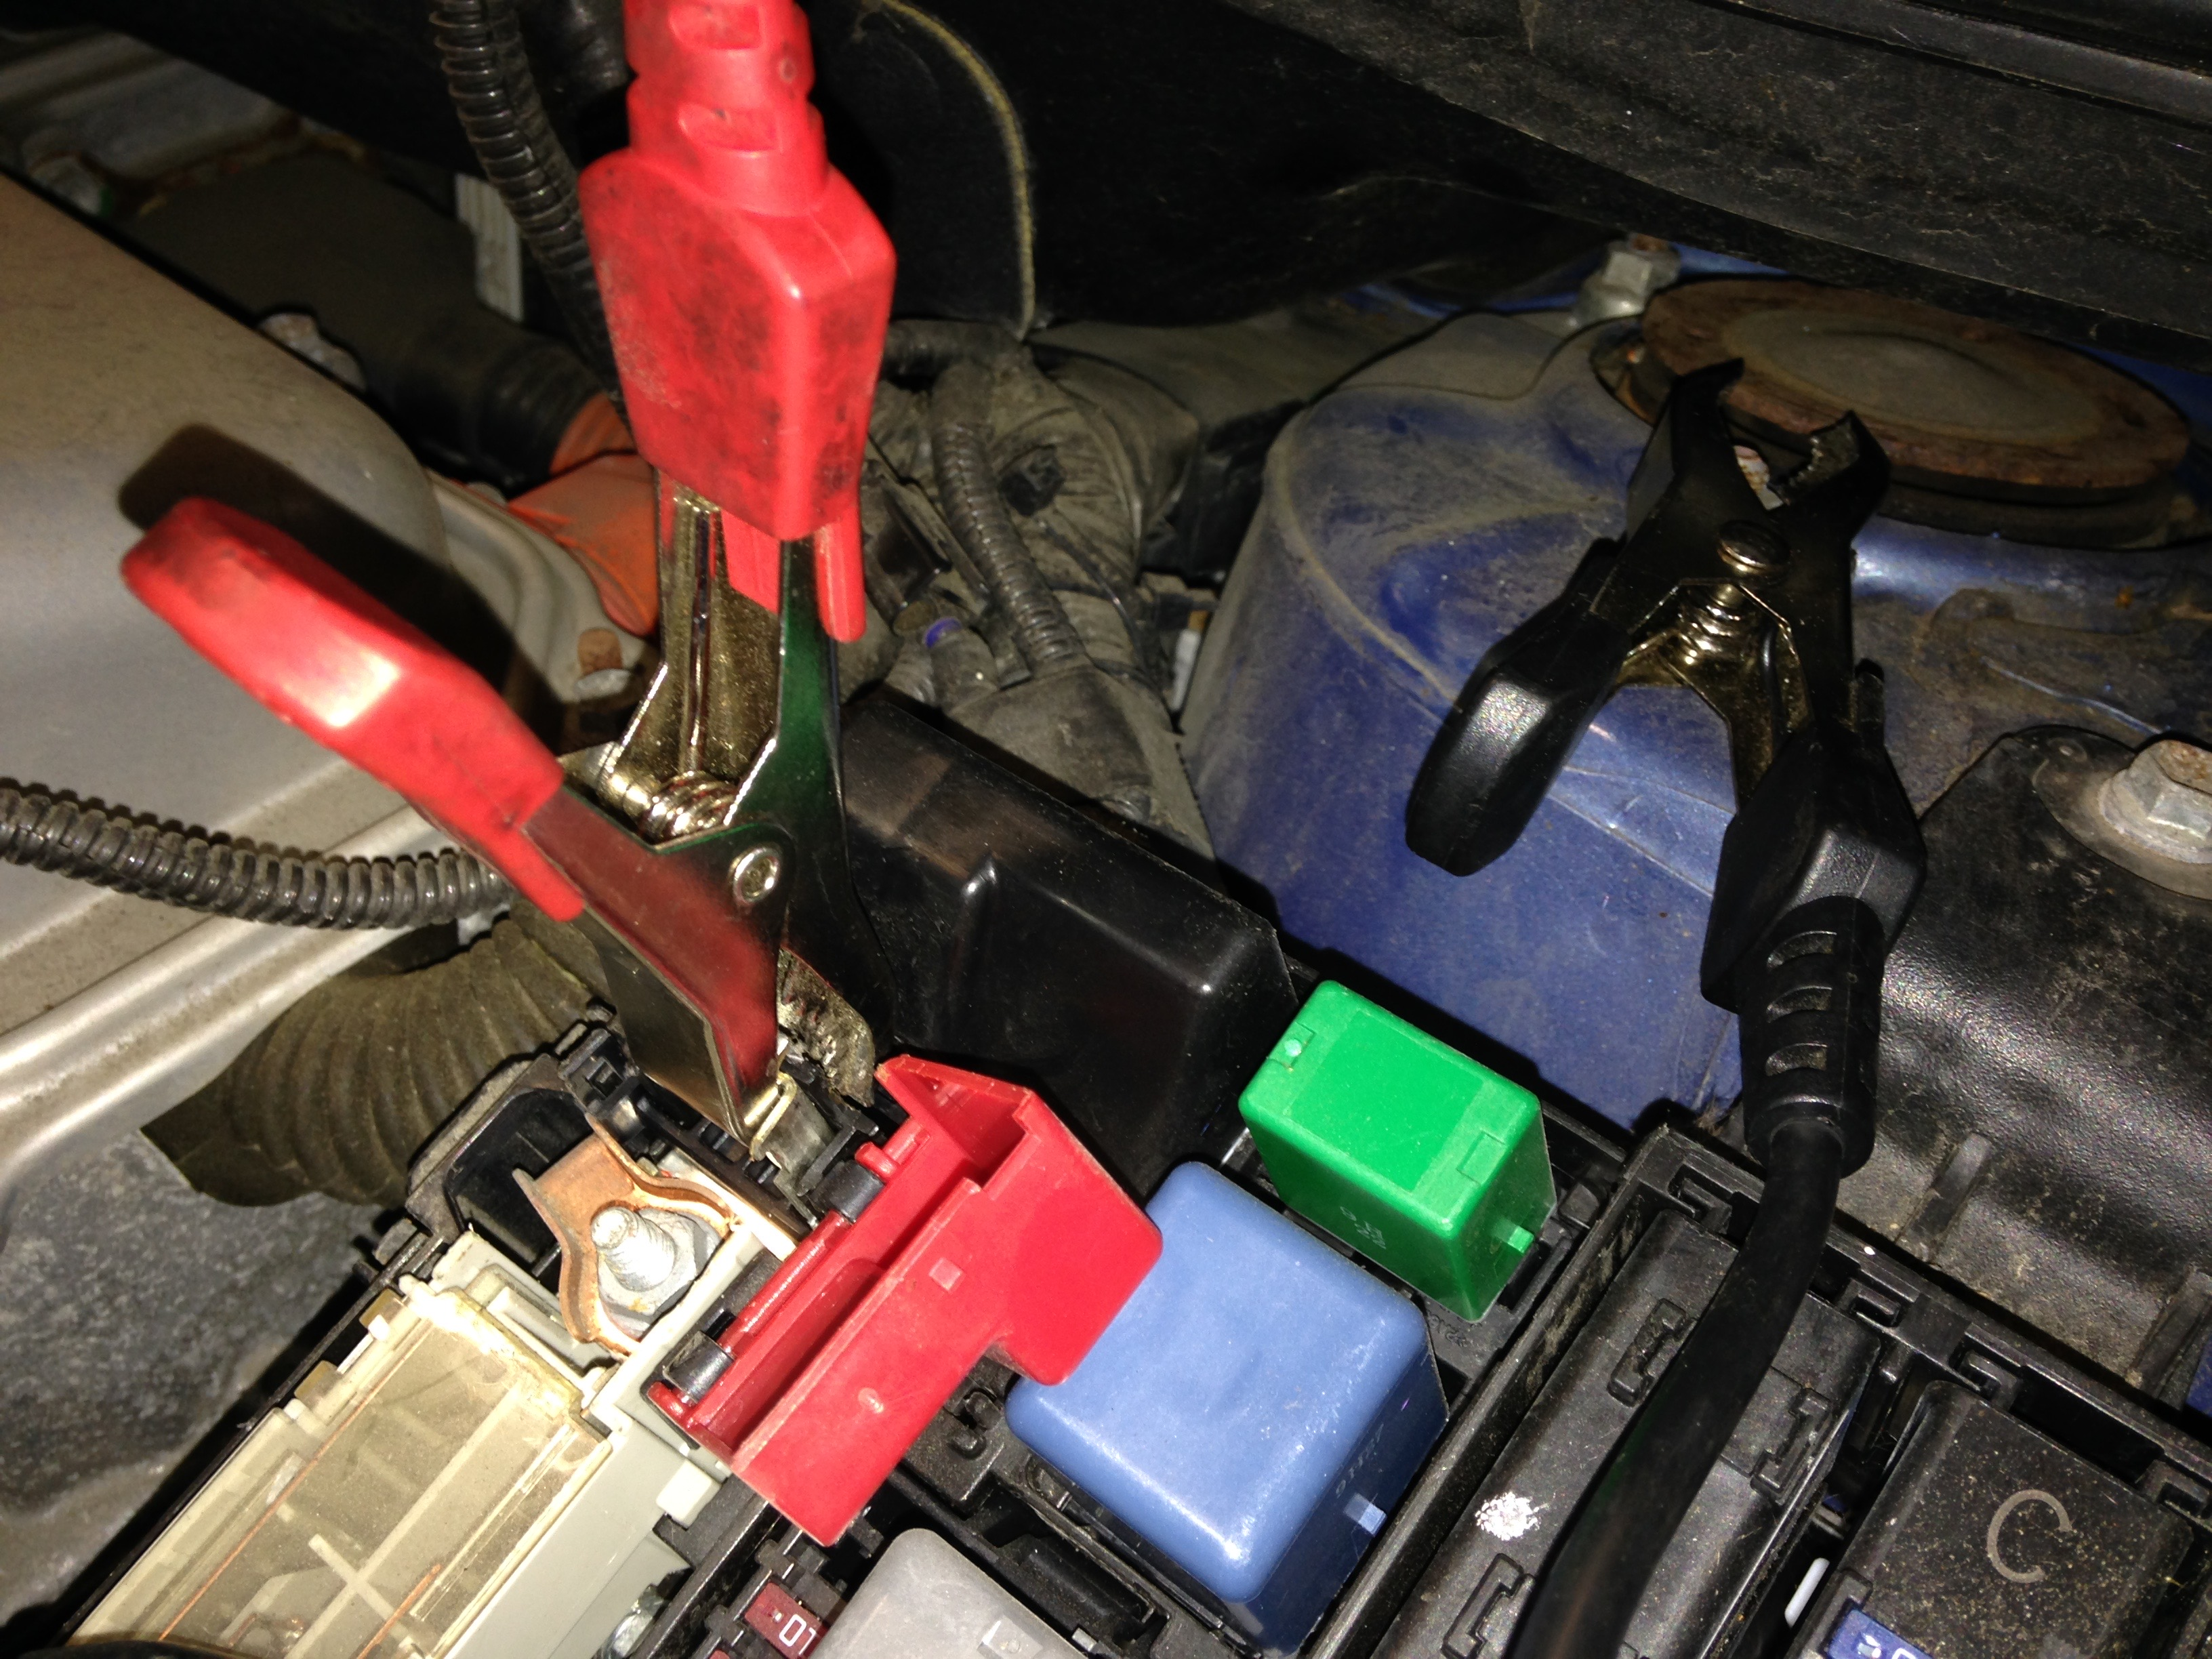 Prius battery cables hooked up. (Terminals are in the front for the 12V starter battery in the back.)